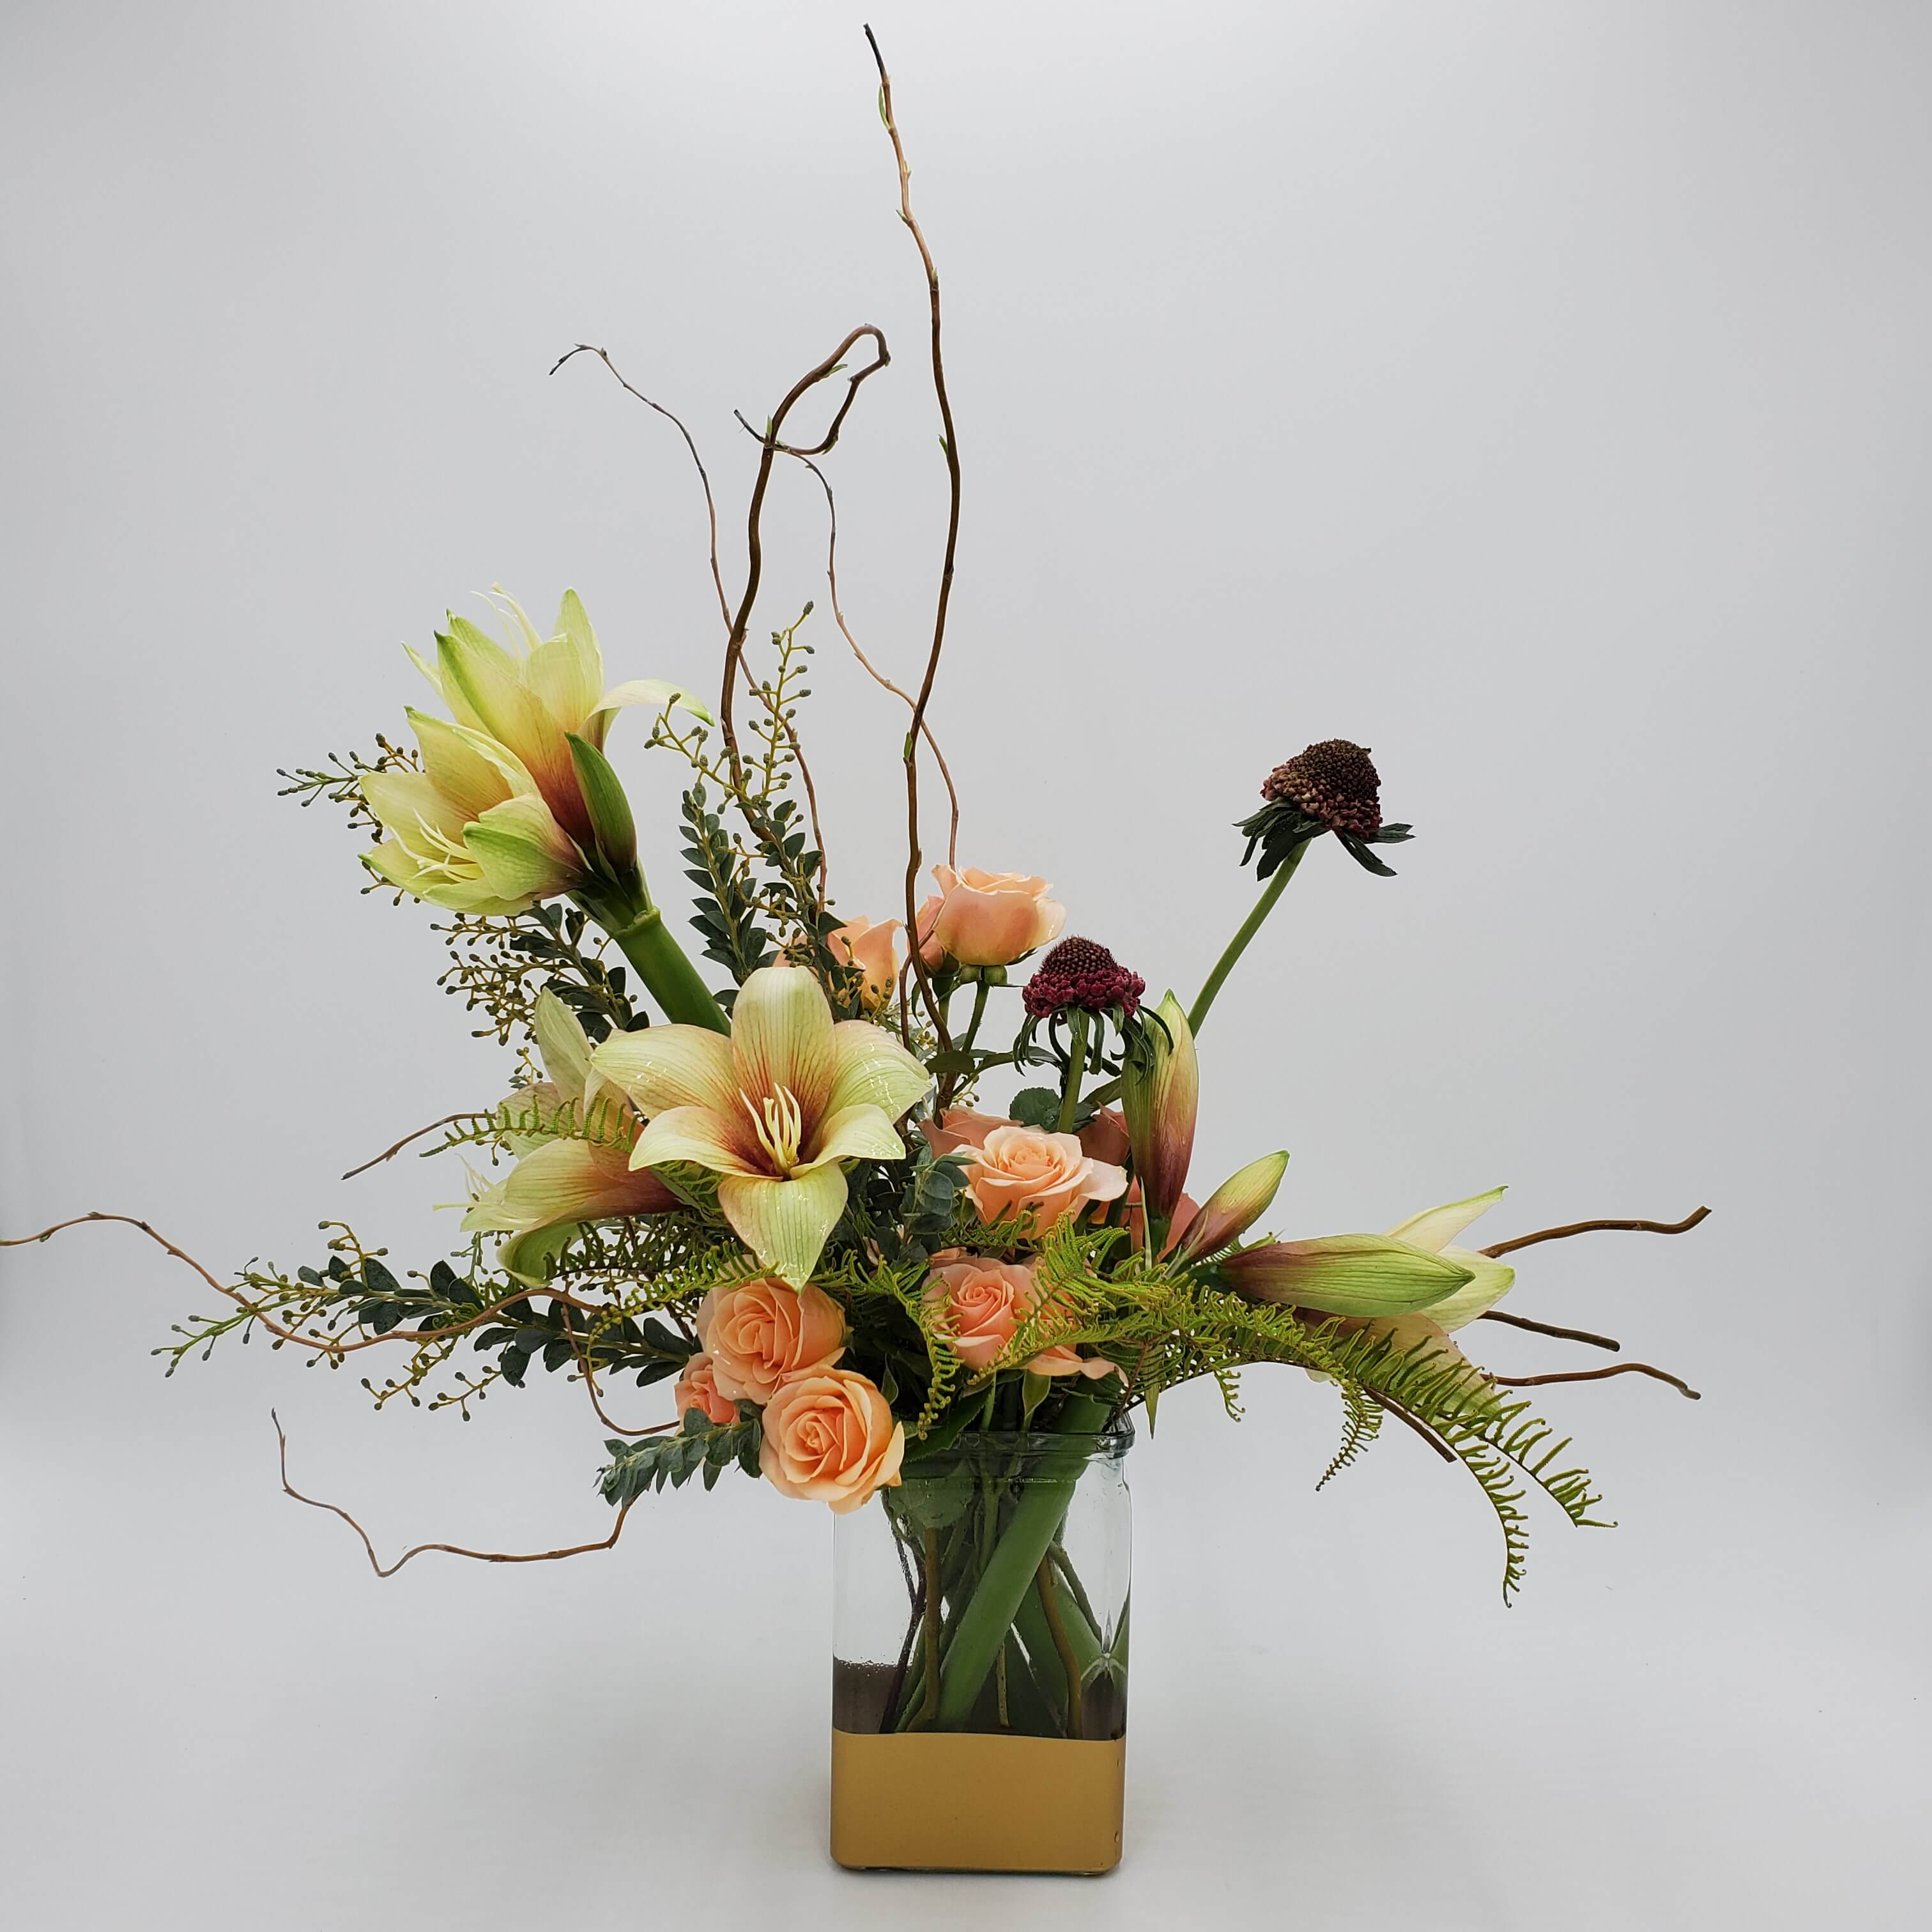 Naturalistic floral design in warm tones